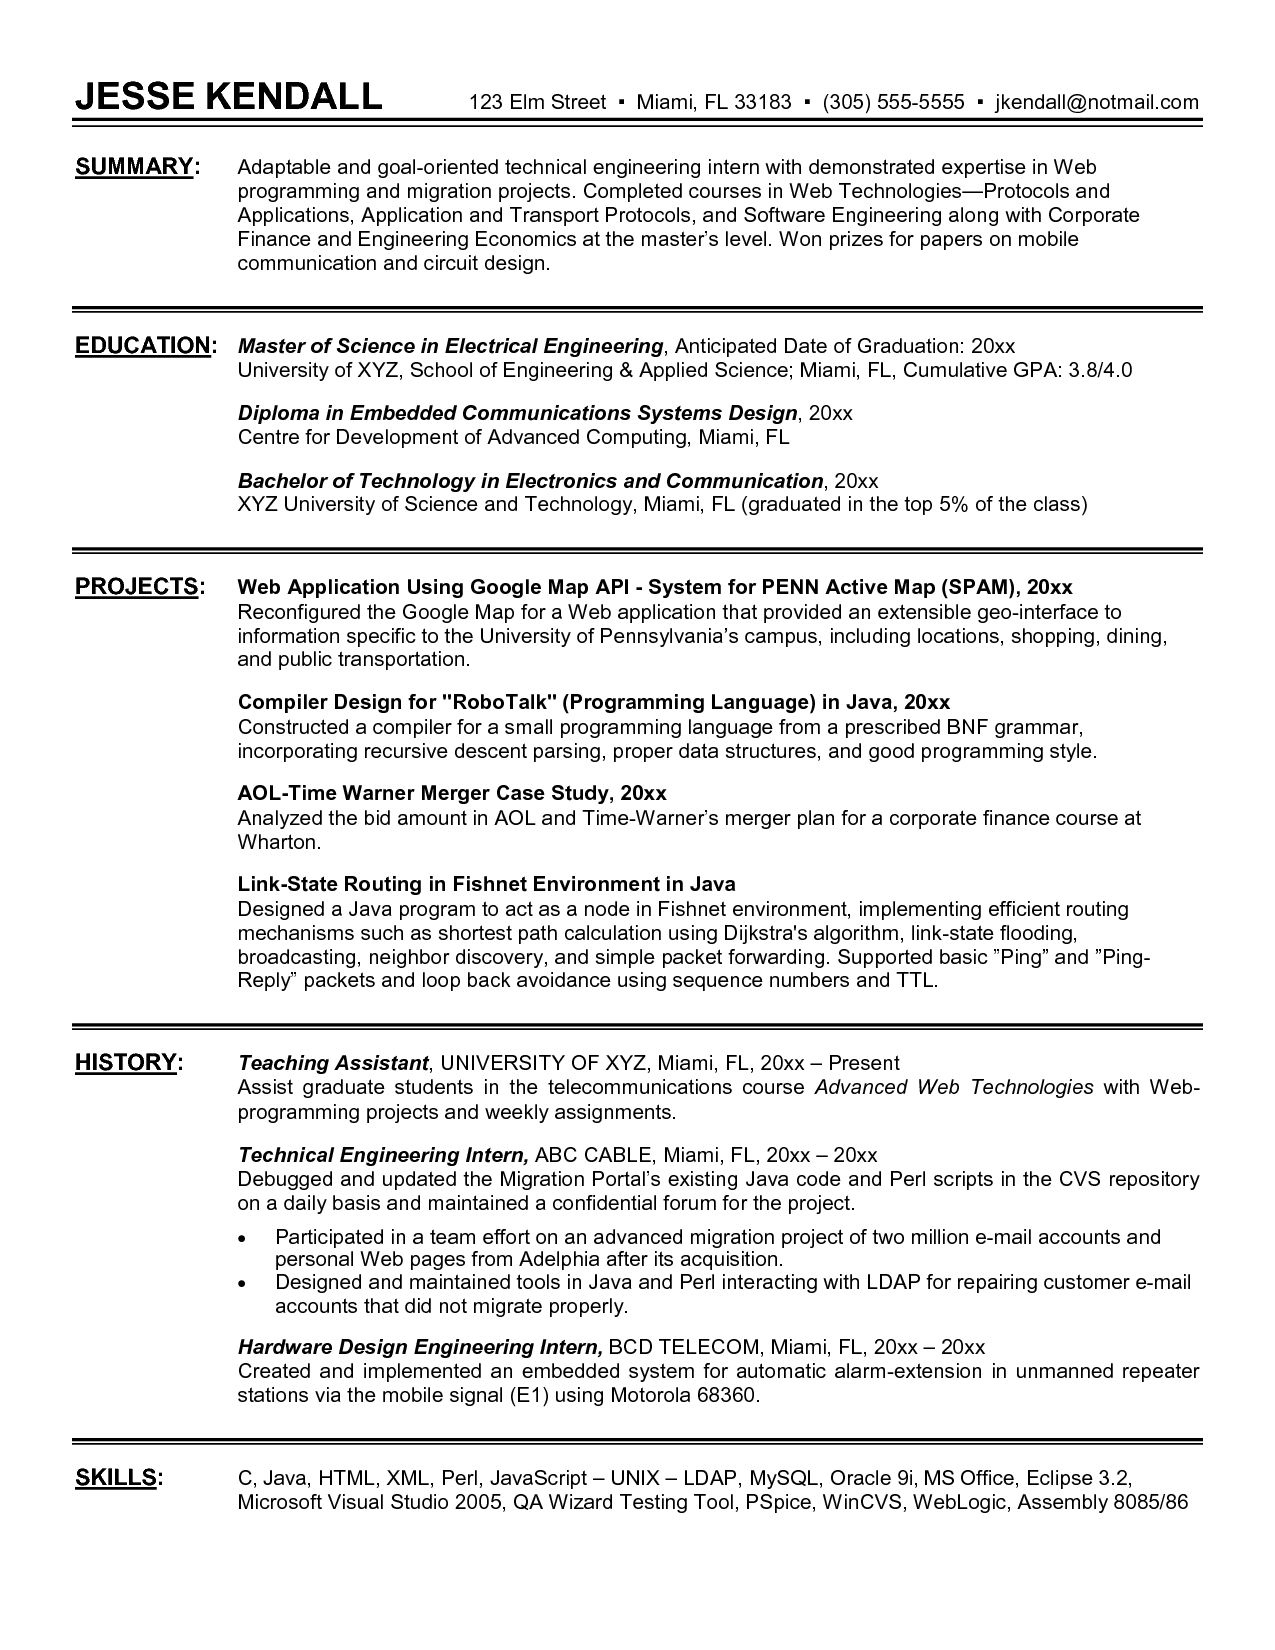 Resume Parsing Prepossessing Resume For Engineering Internship  Opinion Of Professionals  Like .